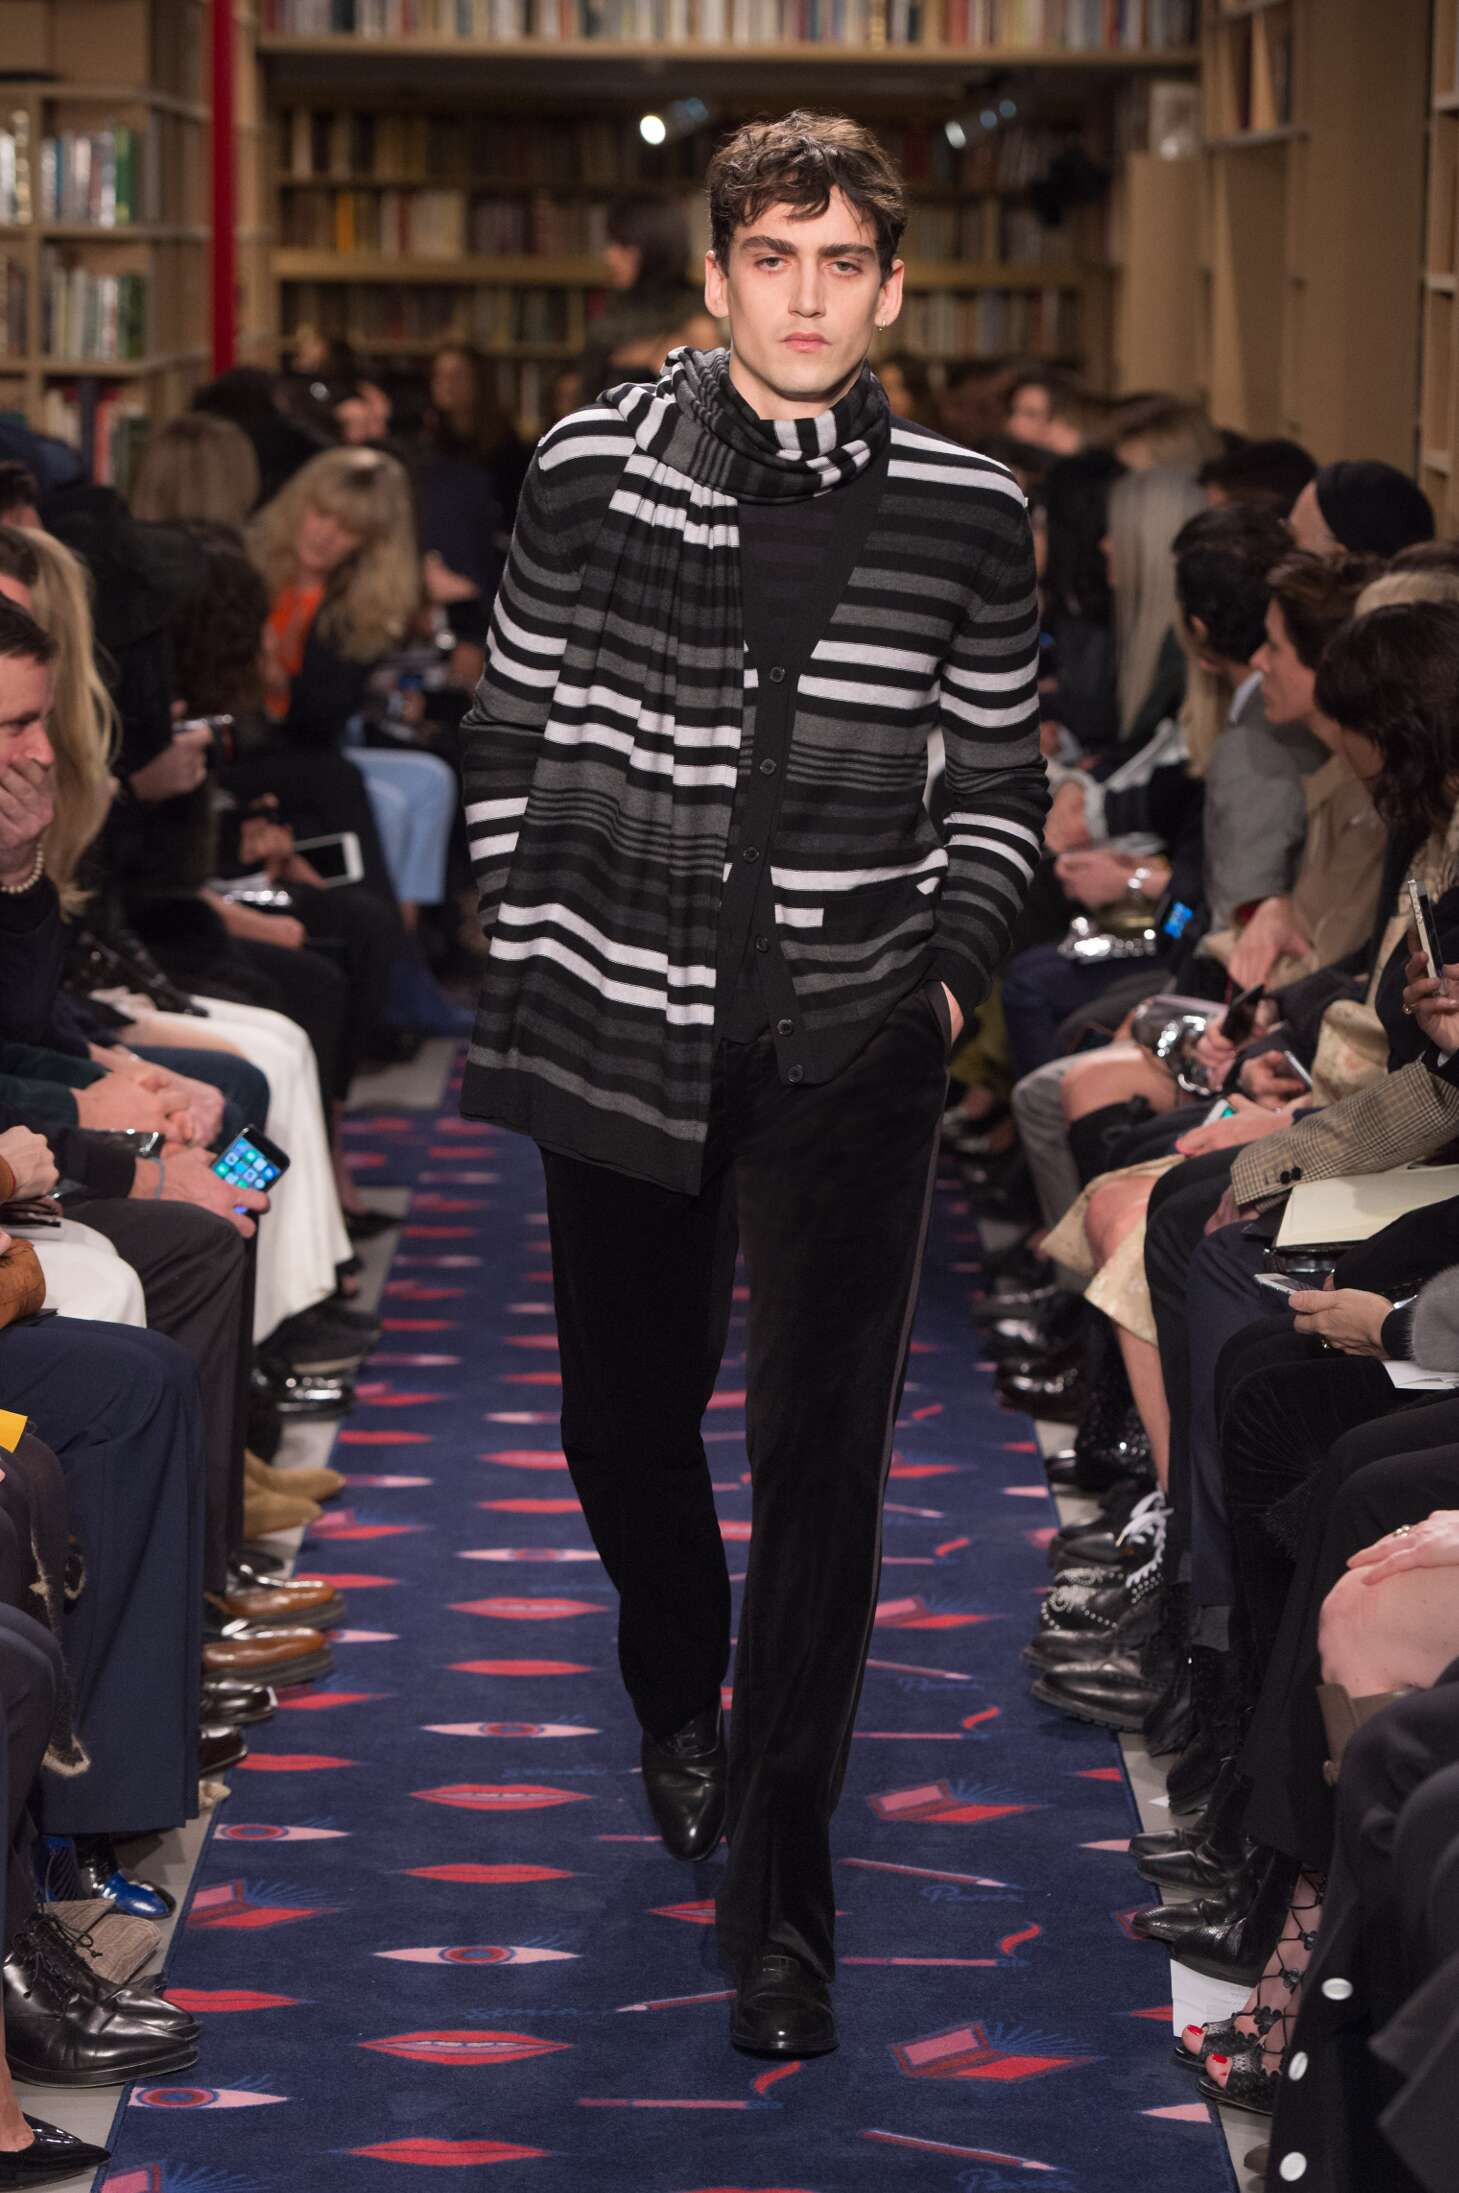 Sonia Rykiel Collection Winter 2015 Catwalk